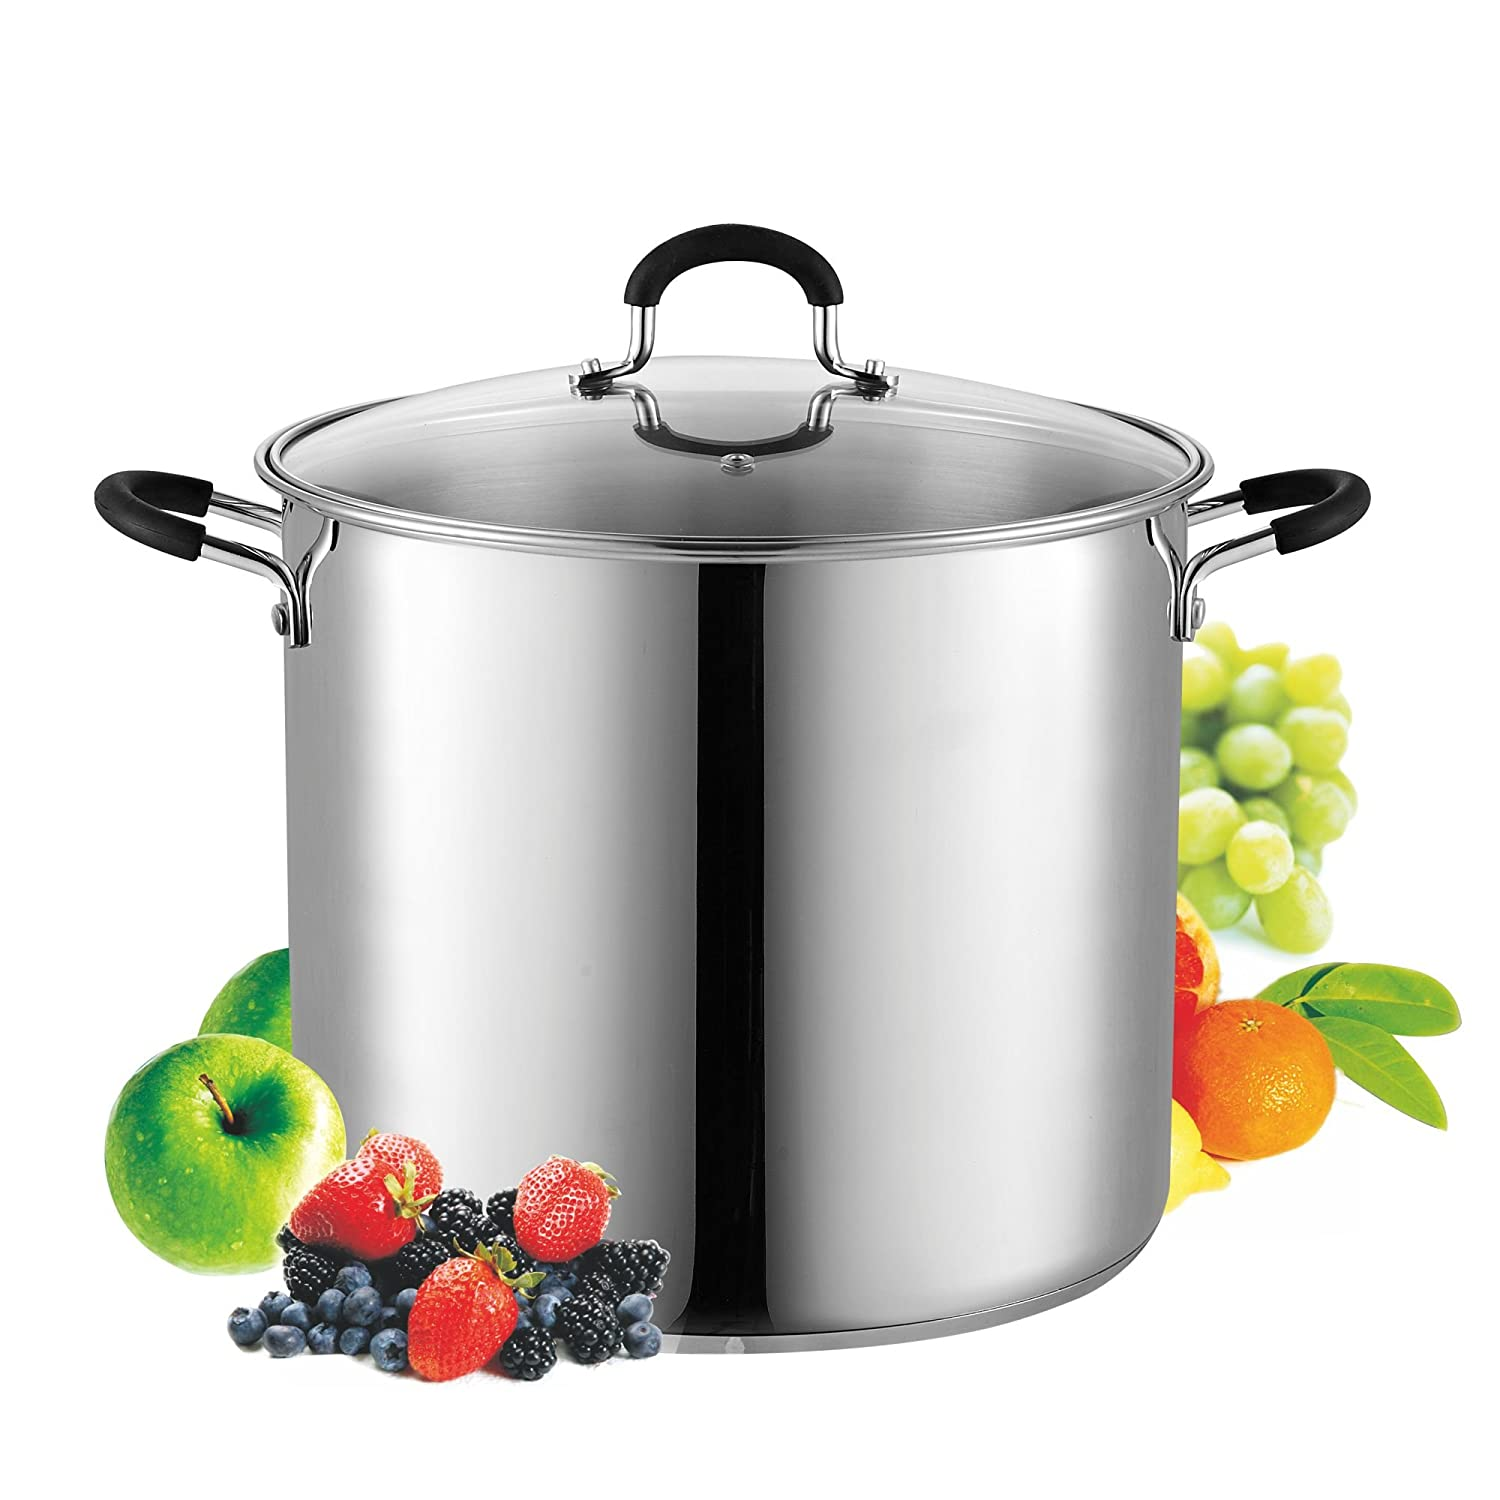 12-Quart Stockpot W/ Lid